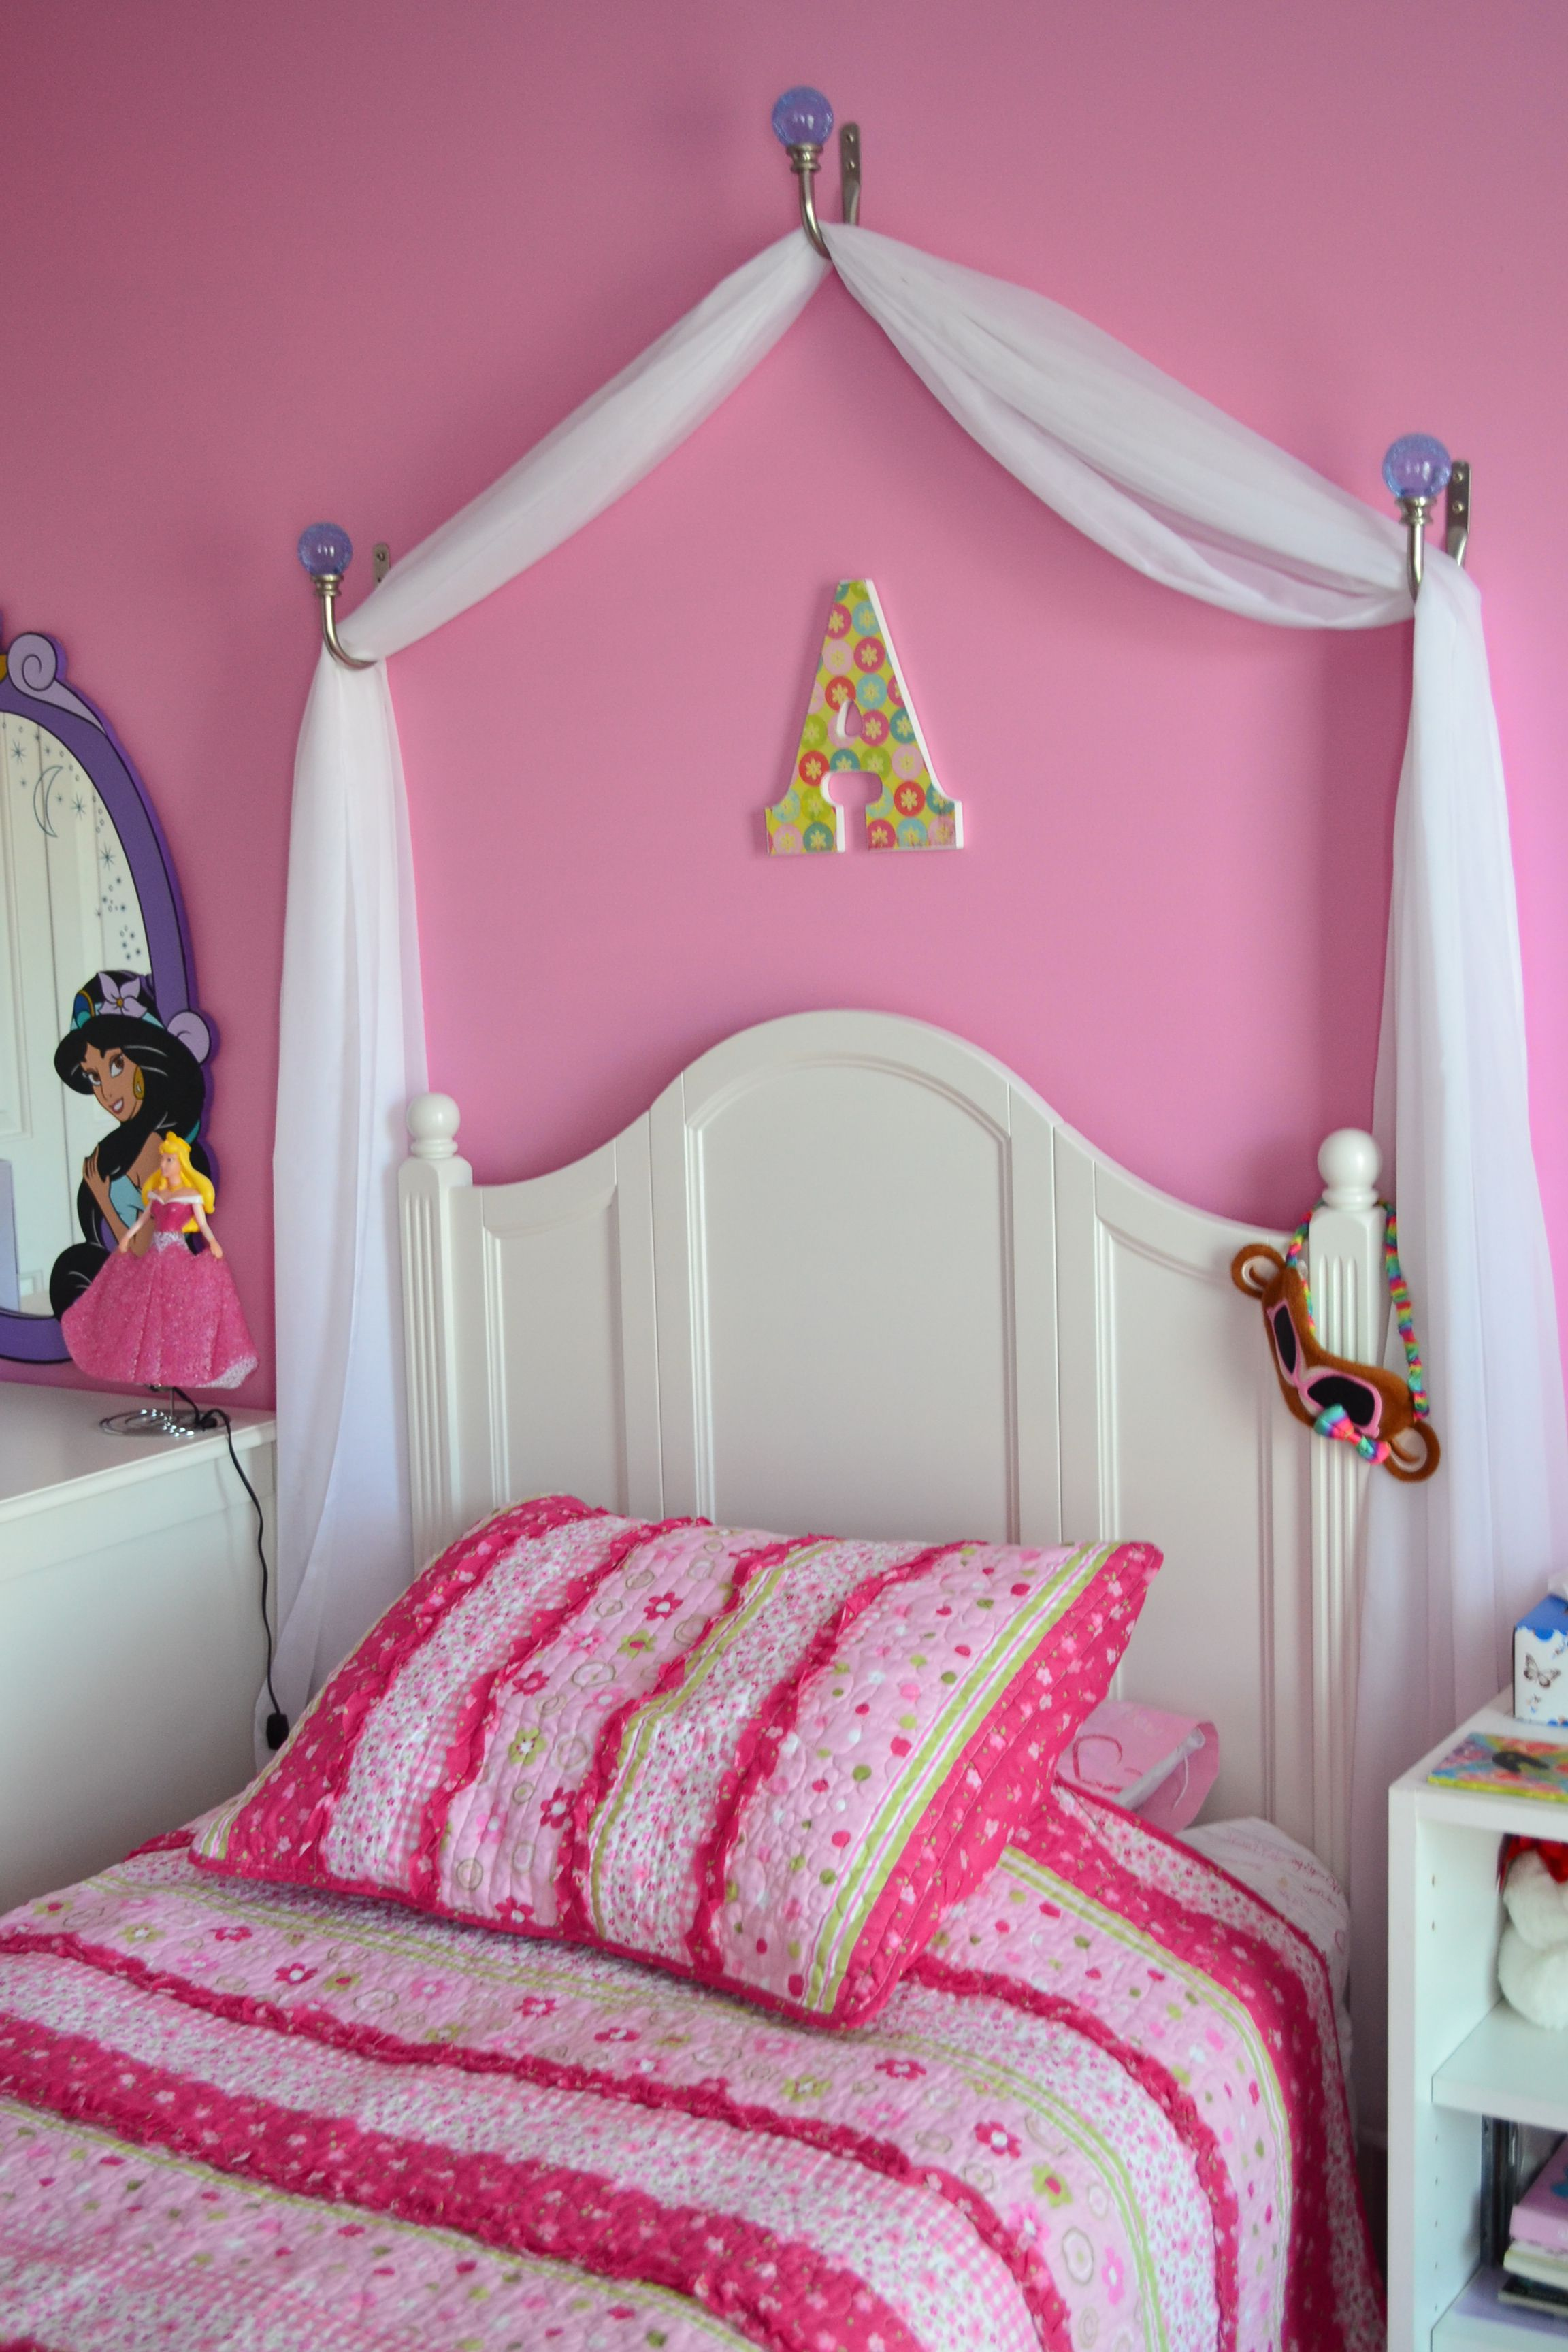 Little Girl Canopy Bed Ideas Creating A Disney Princess Room On A Budget Homemade